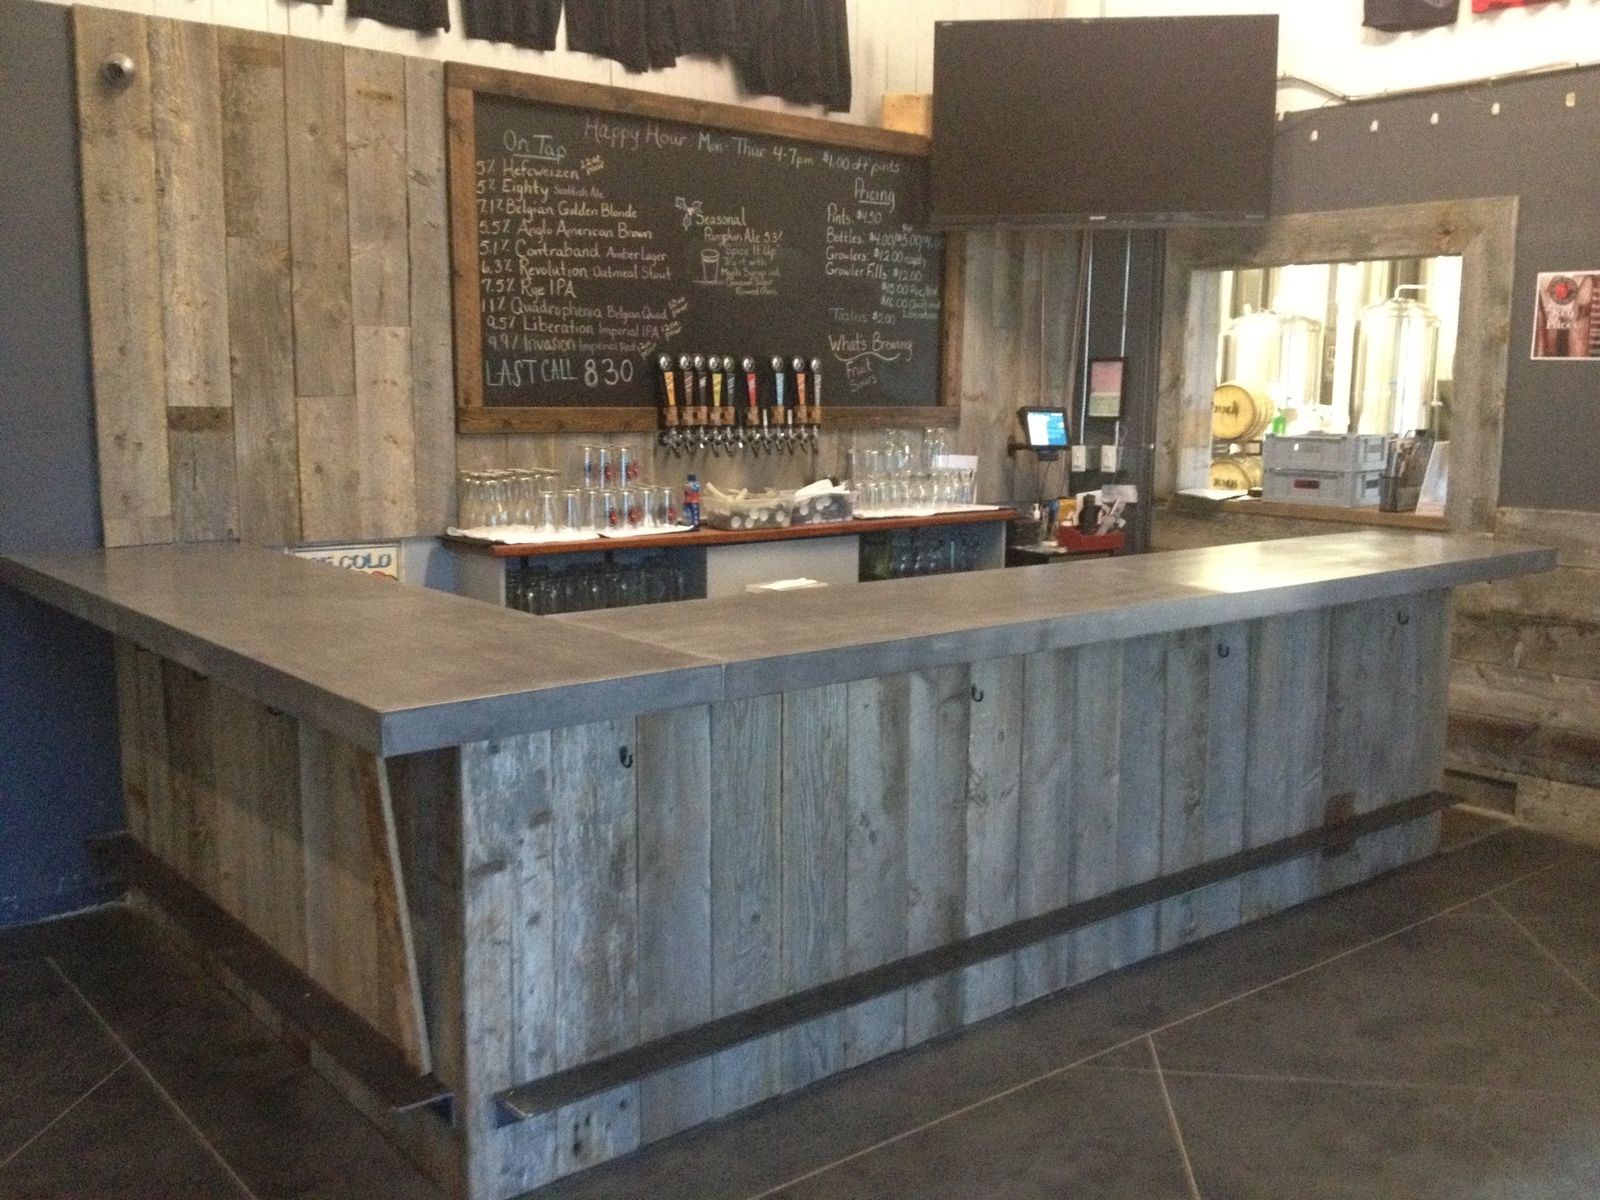 Hand Crafted Reclaimed Wood Tasting Room Wall Cladding  : 2592446133 from www.custommade.com size 1600 x 1200 jpeg 292kB